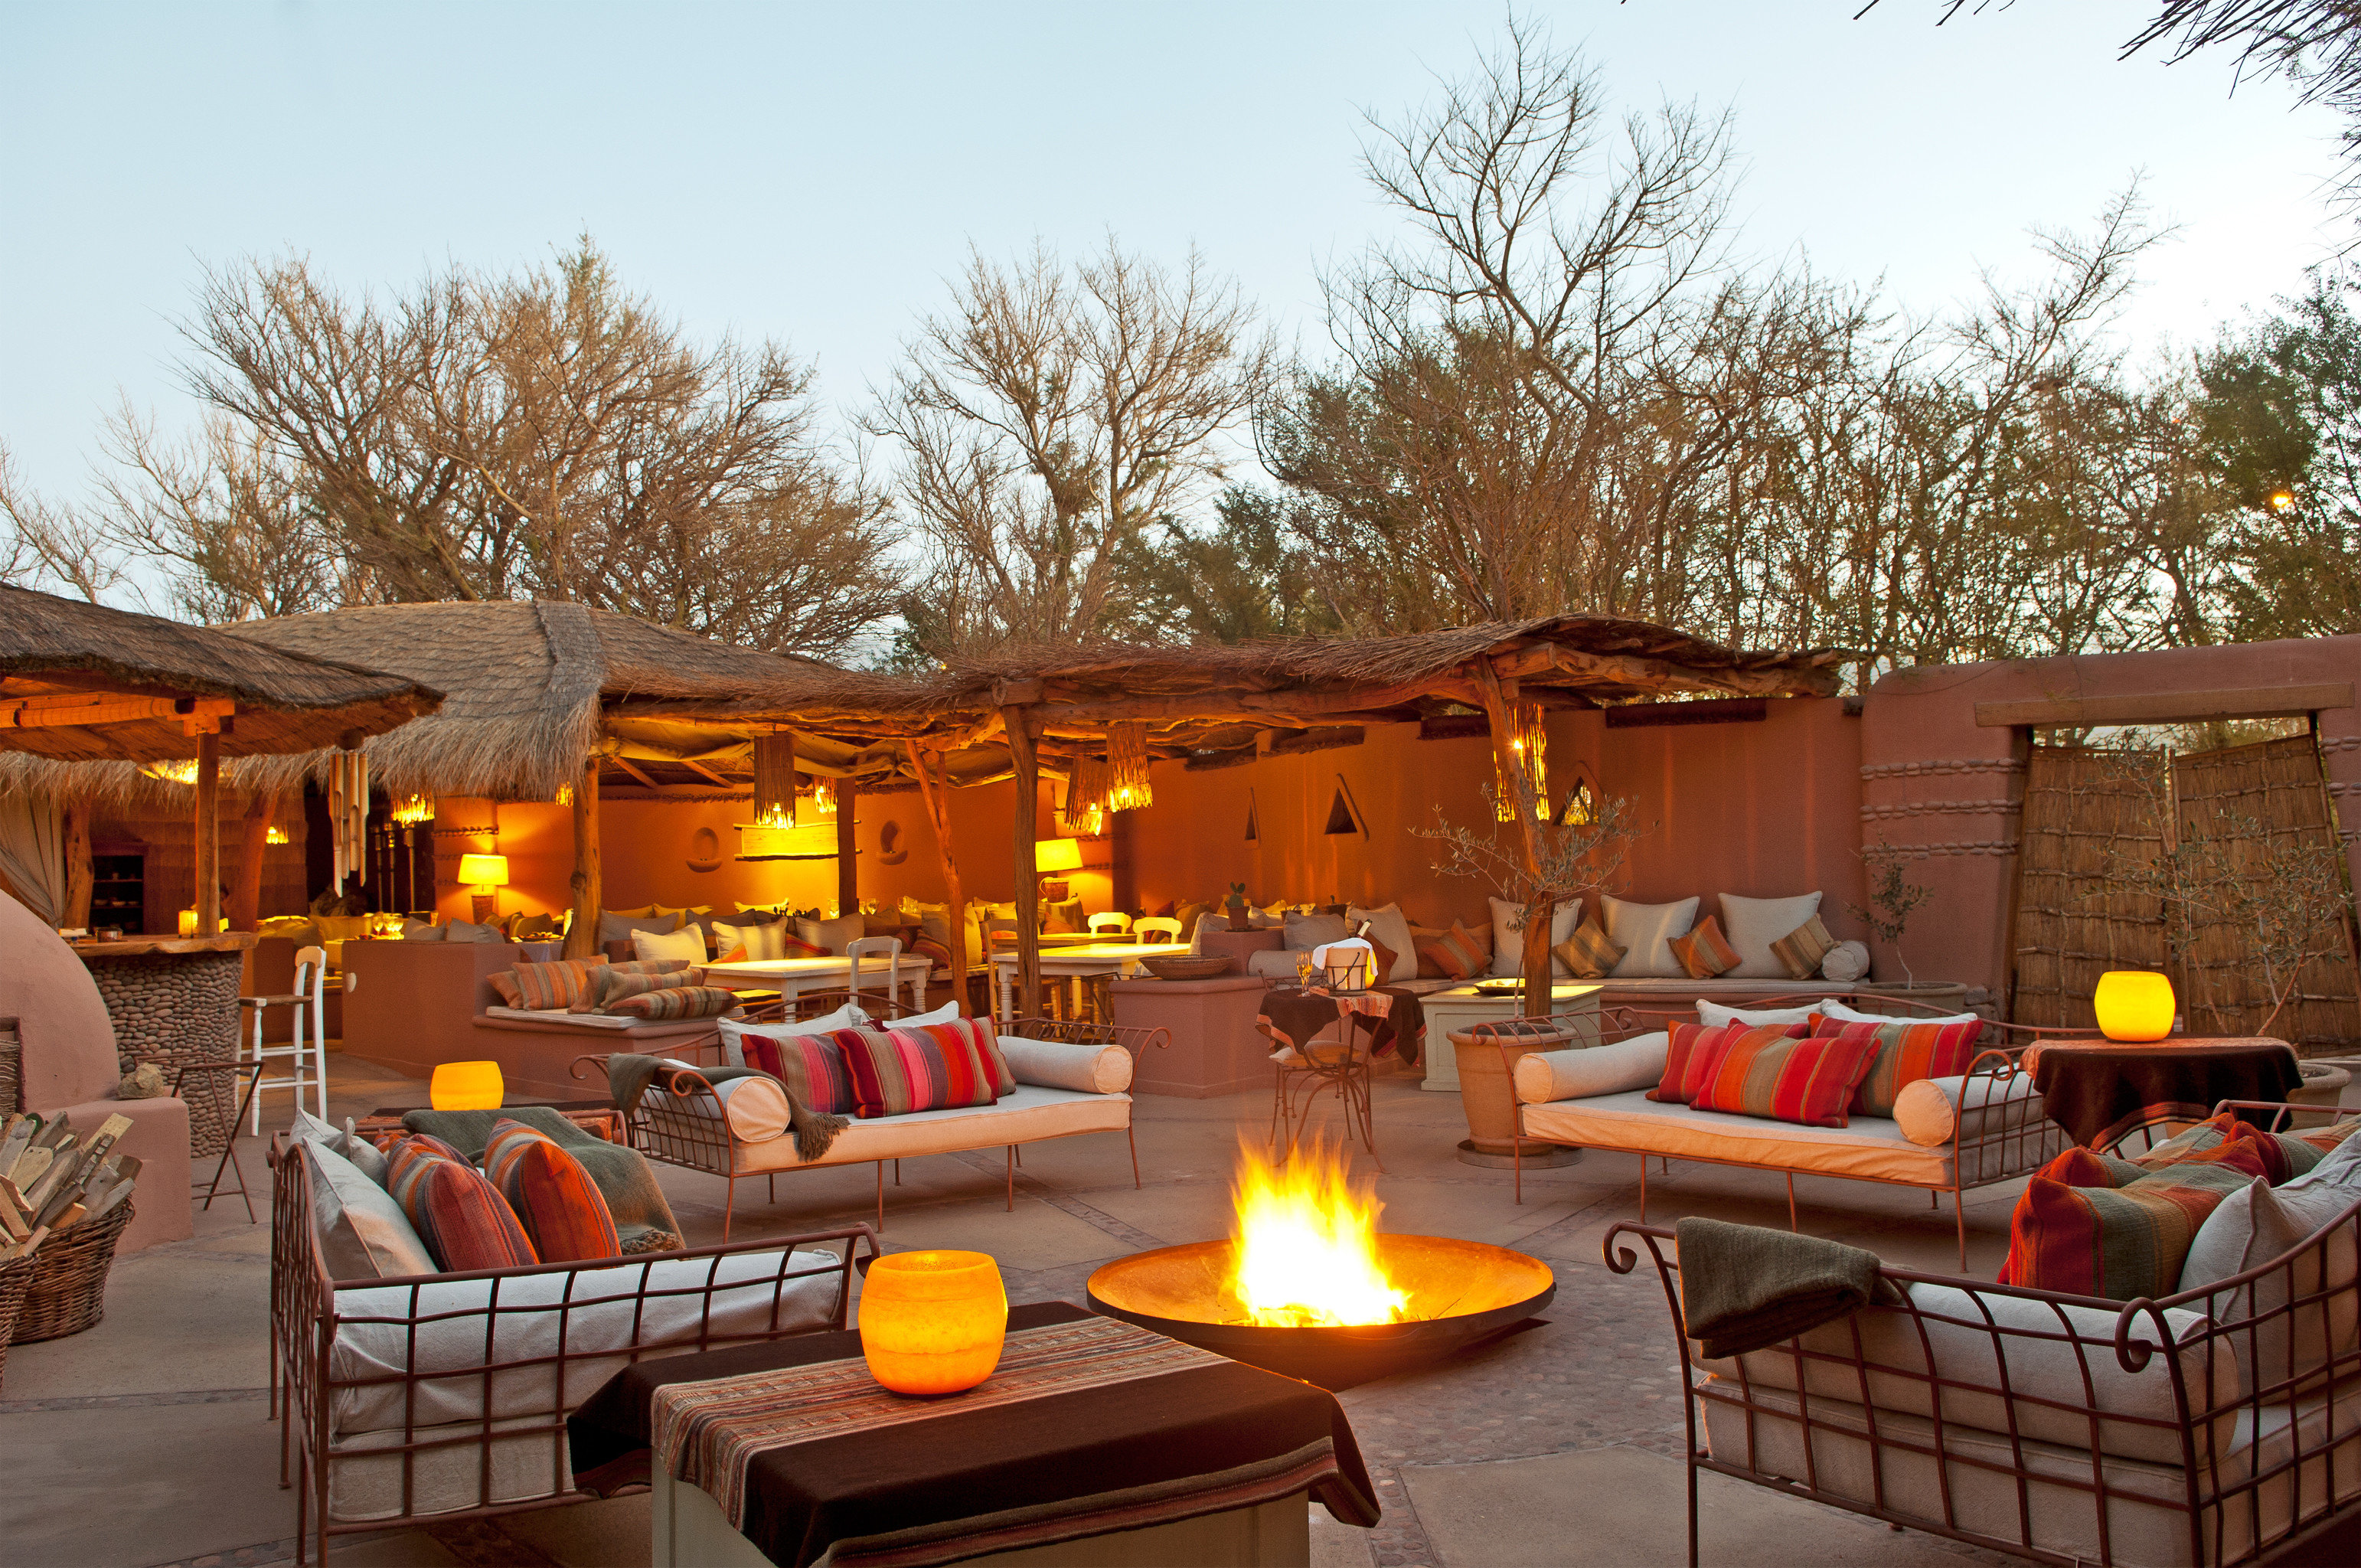 Courtyard Desert Firepit Lounge Outdoors Rustic sky tree property home house log cabin backyard cottage living room Resort Villa outdoor structure